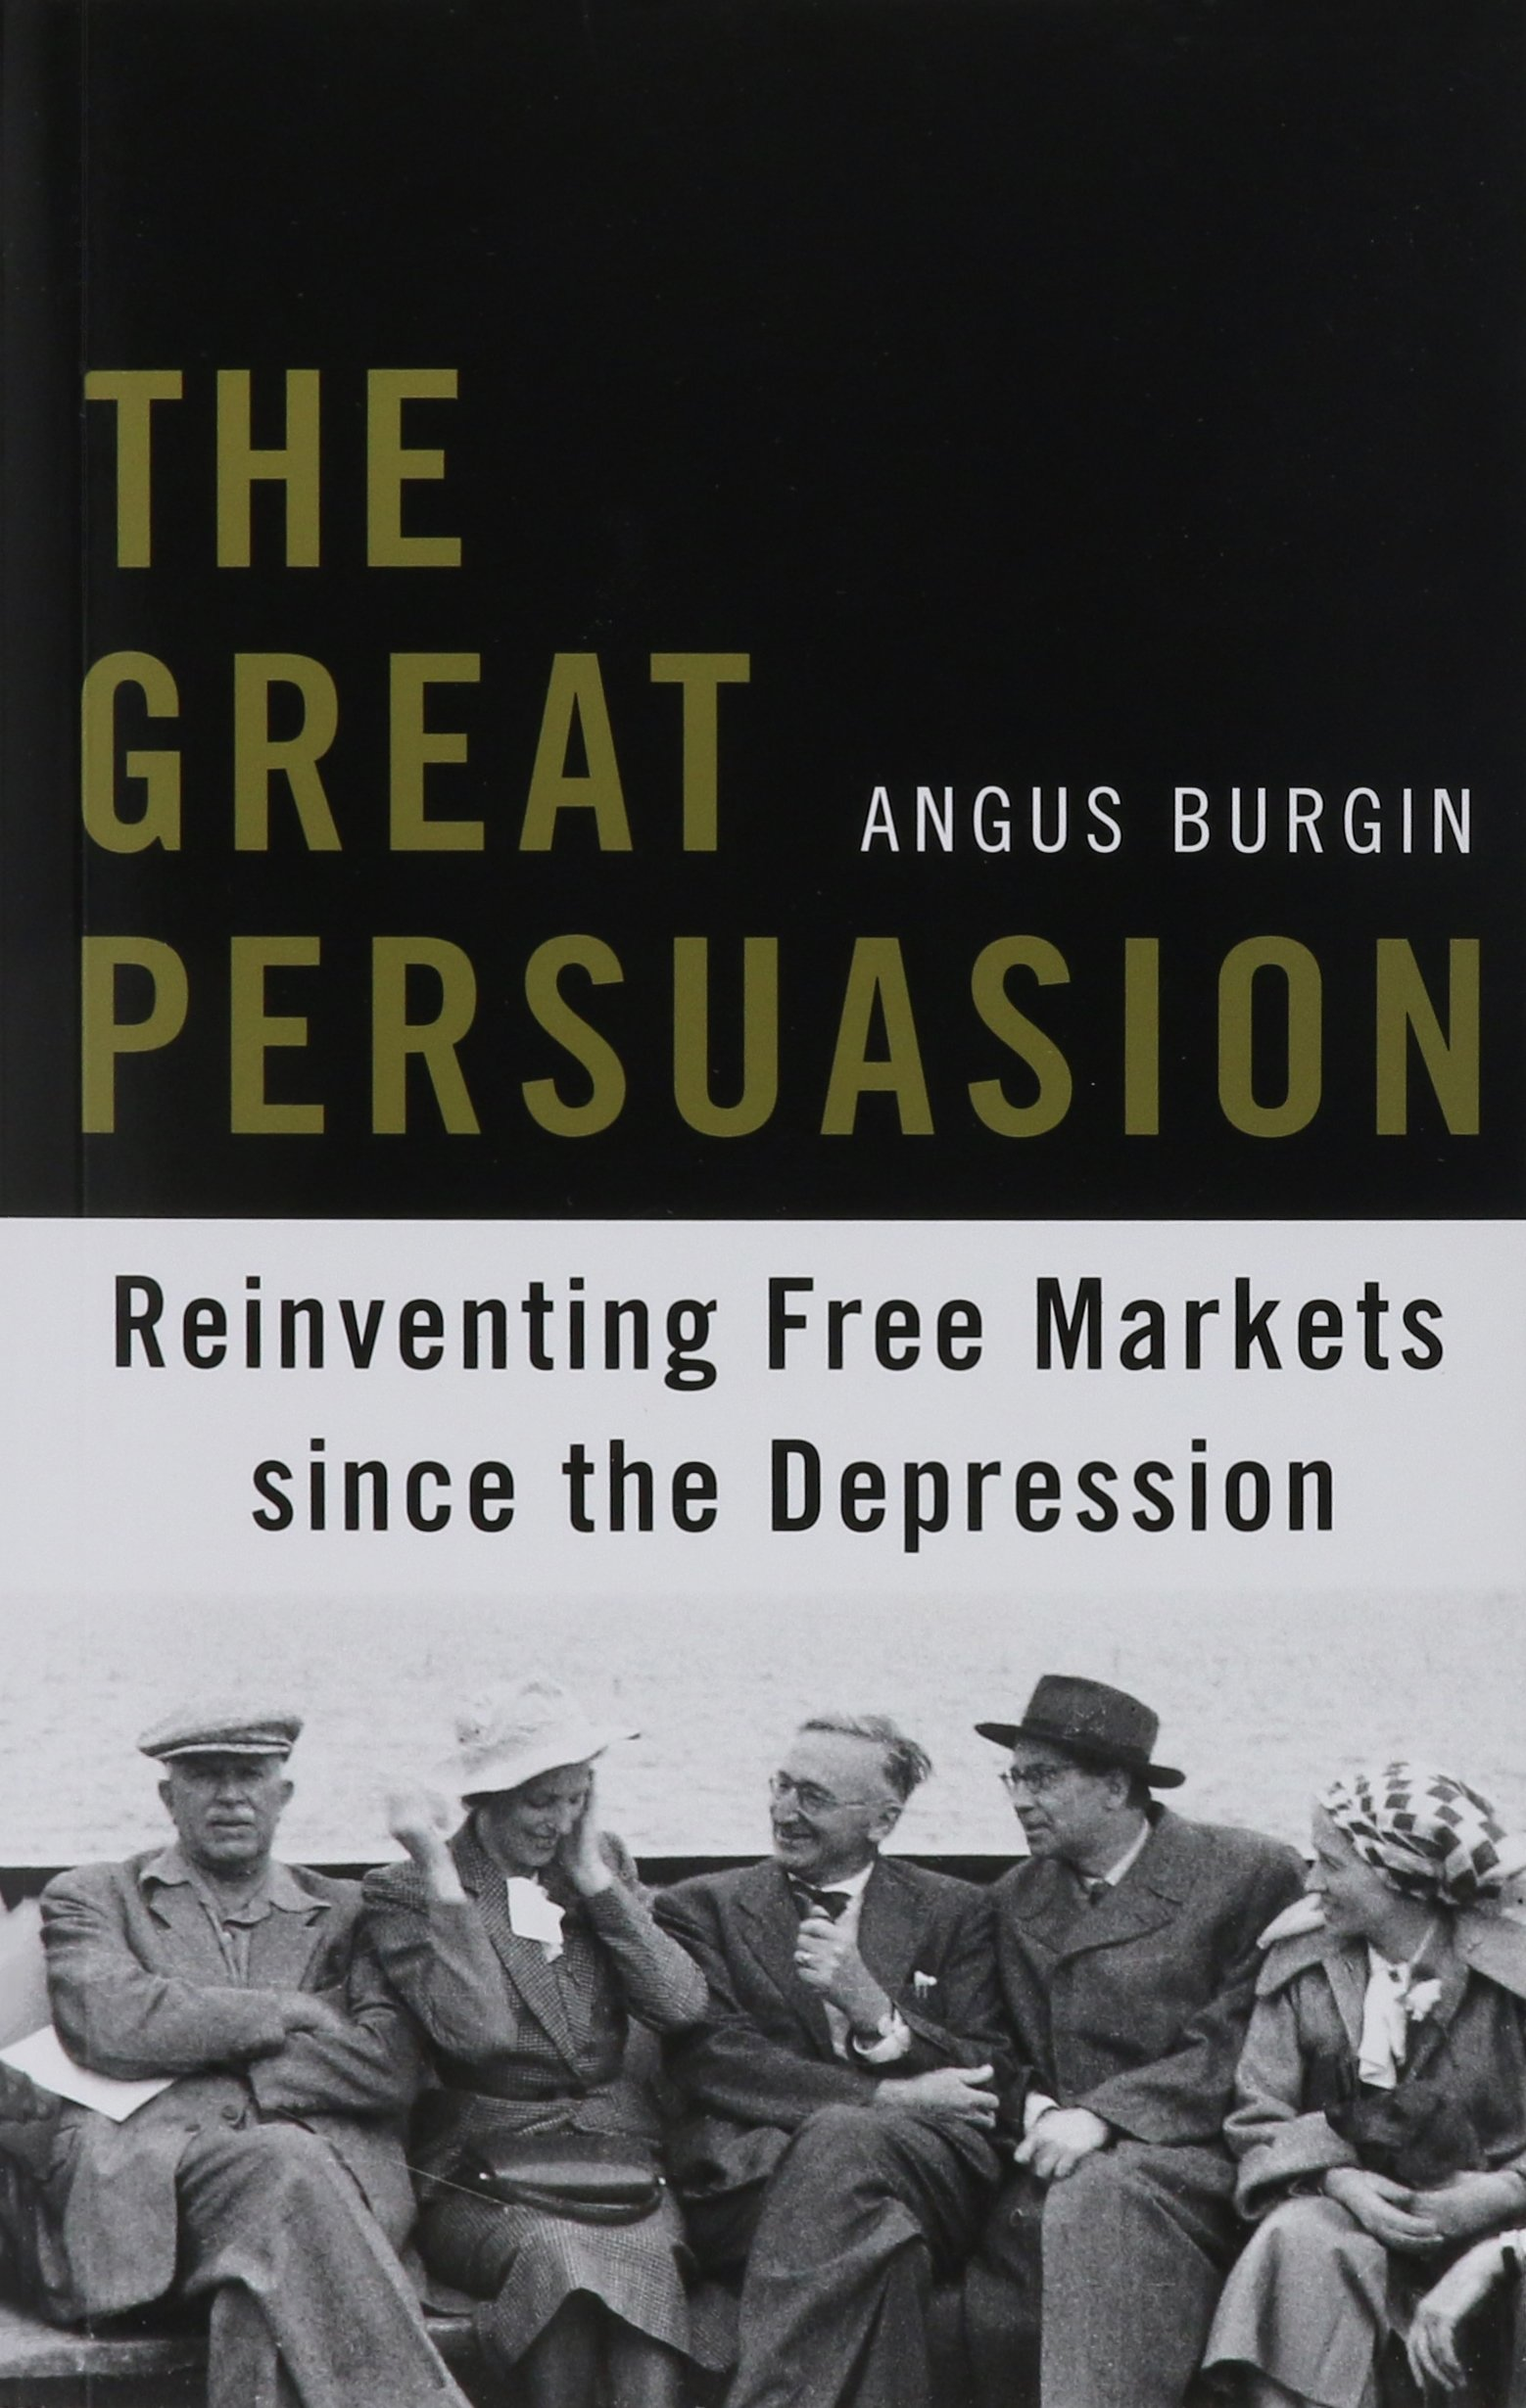 Great Persuasion Reinventing Markets Depression product image